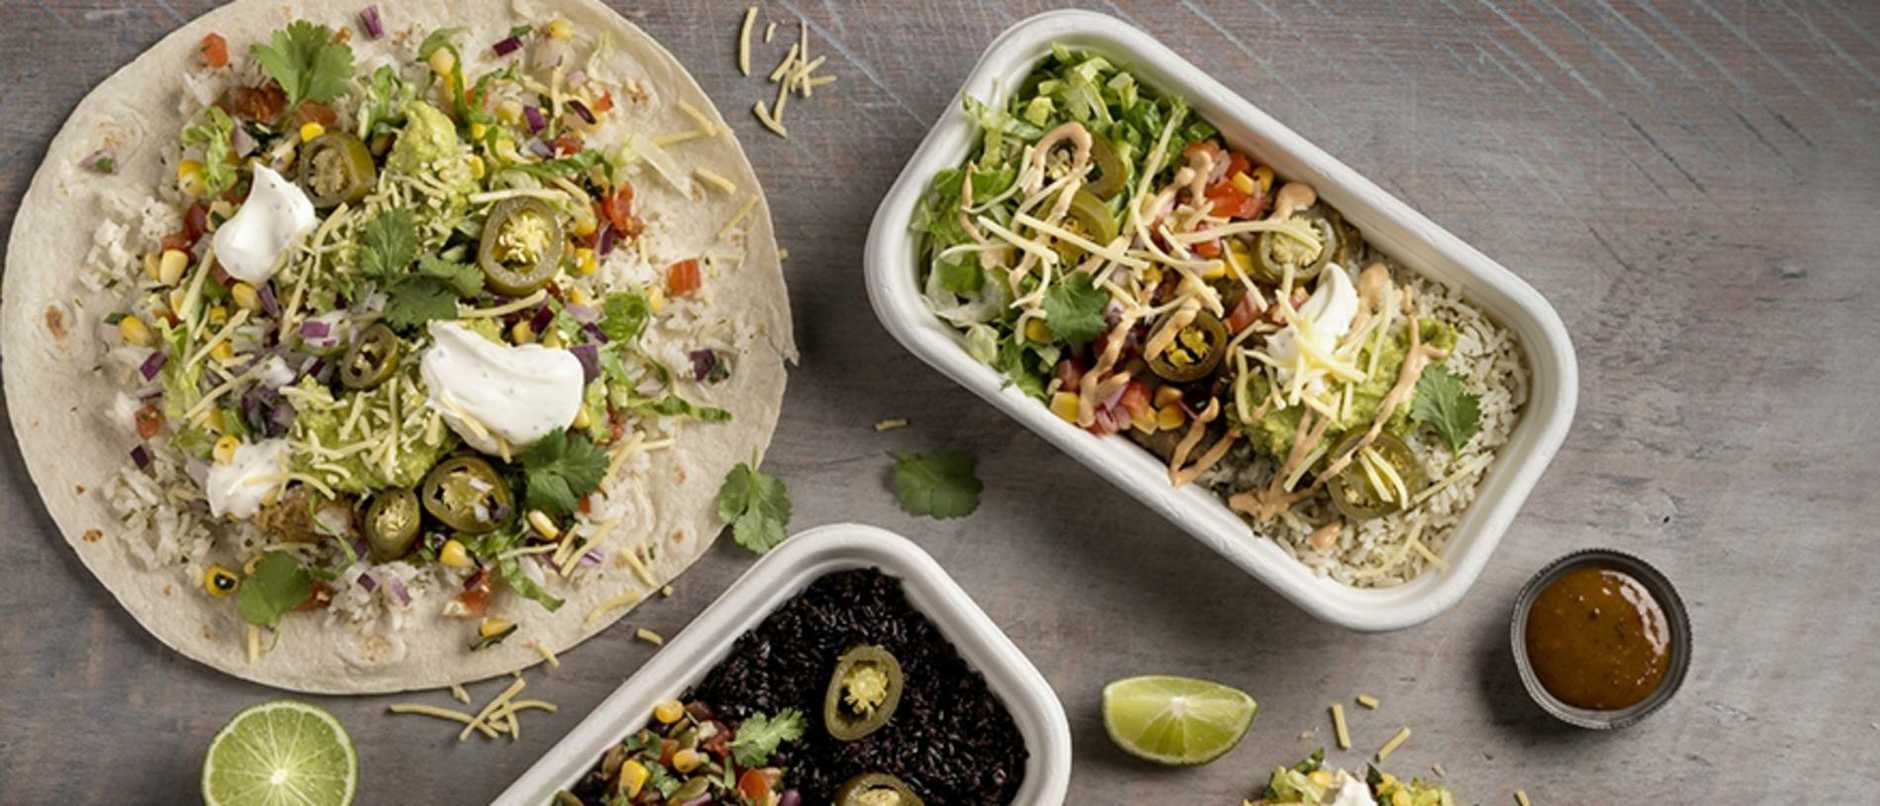 Two outlets of popular Mexican fast food chain Zambrero will be wound up after the economic downturn smashed them hard.